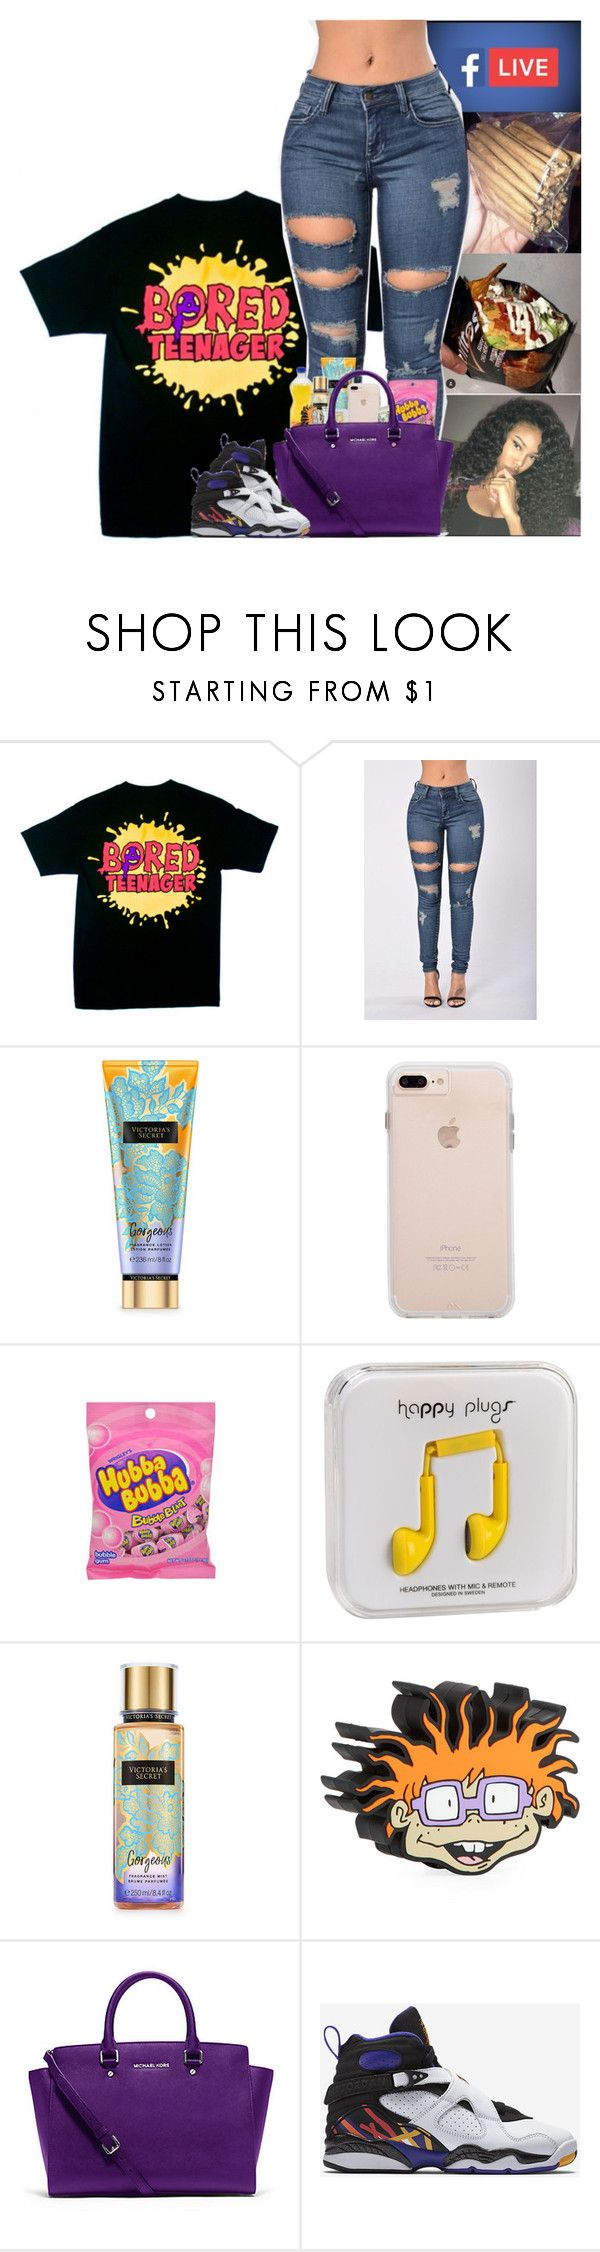 """☢️"" by kennisha84 ❤ liked on Polyvore featuring Happy Plugs, Victoria's Secret, M.A.C, WattUp, Michael Kors and NIKE"